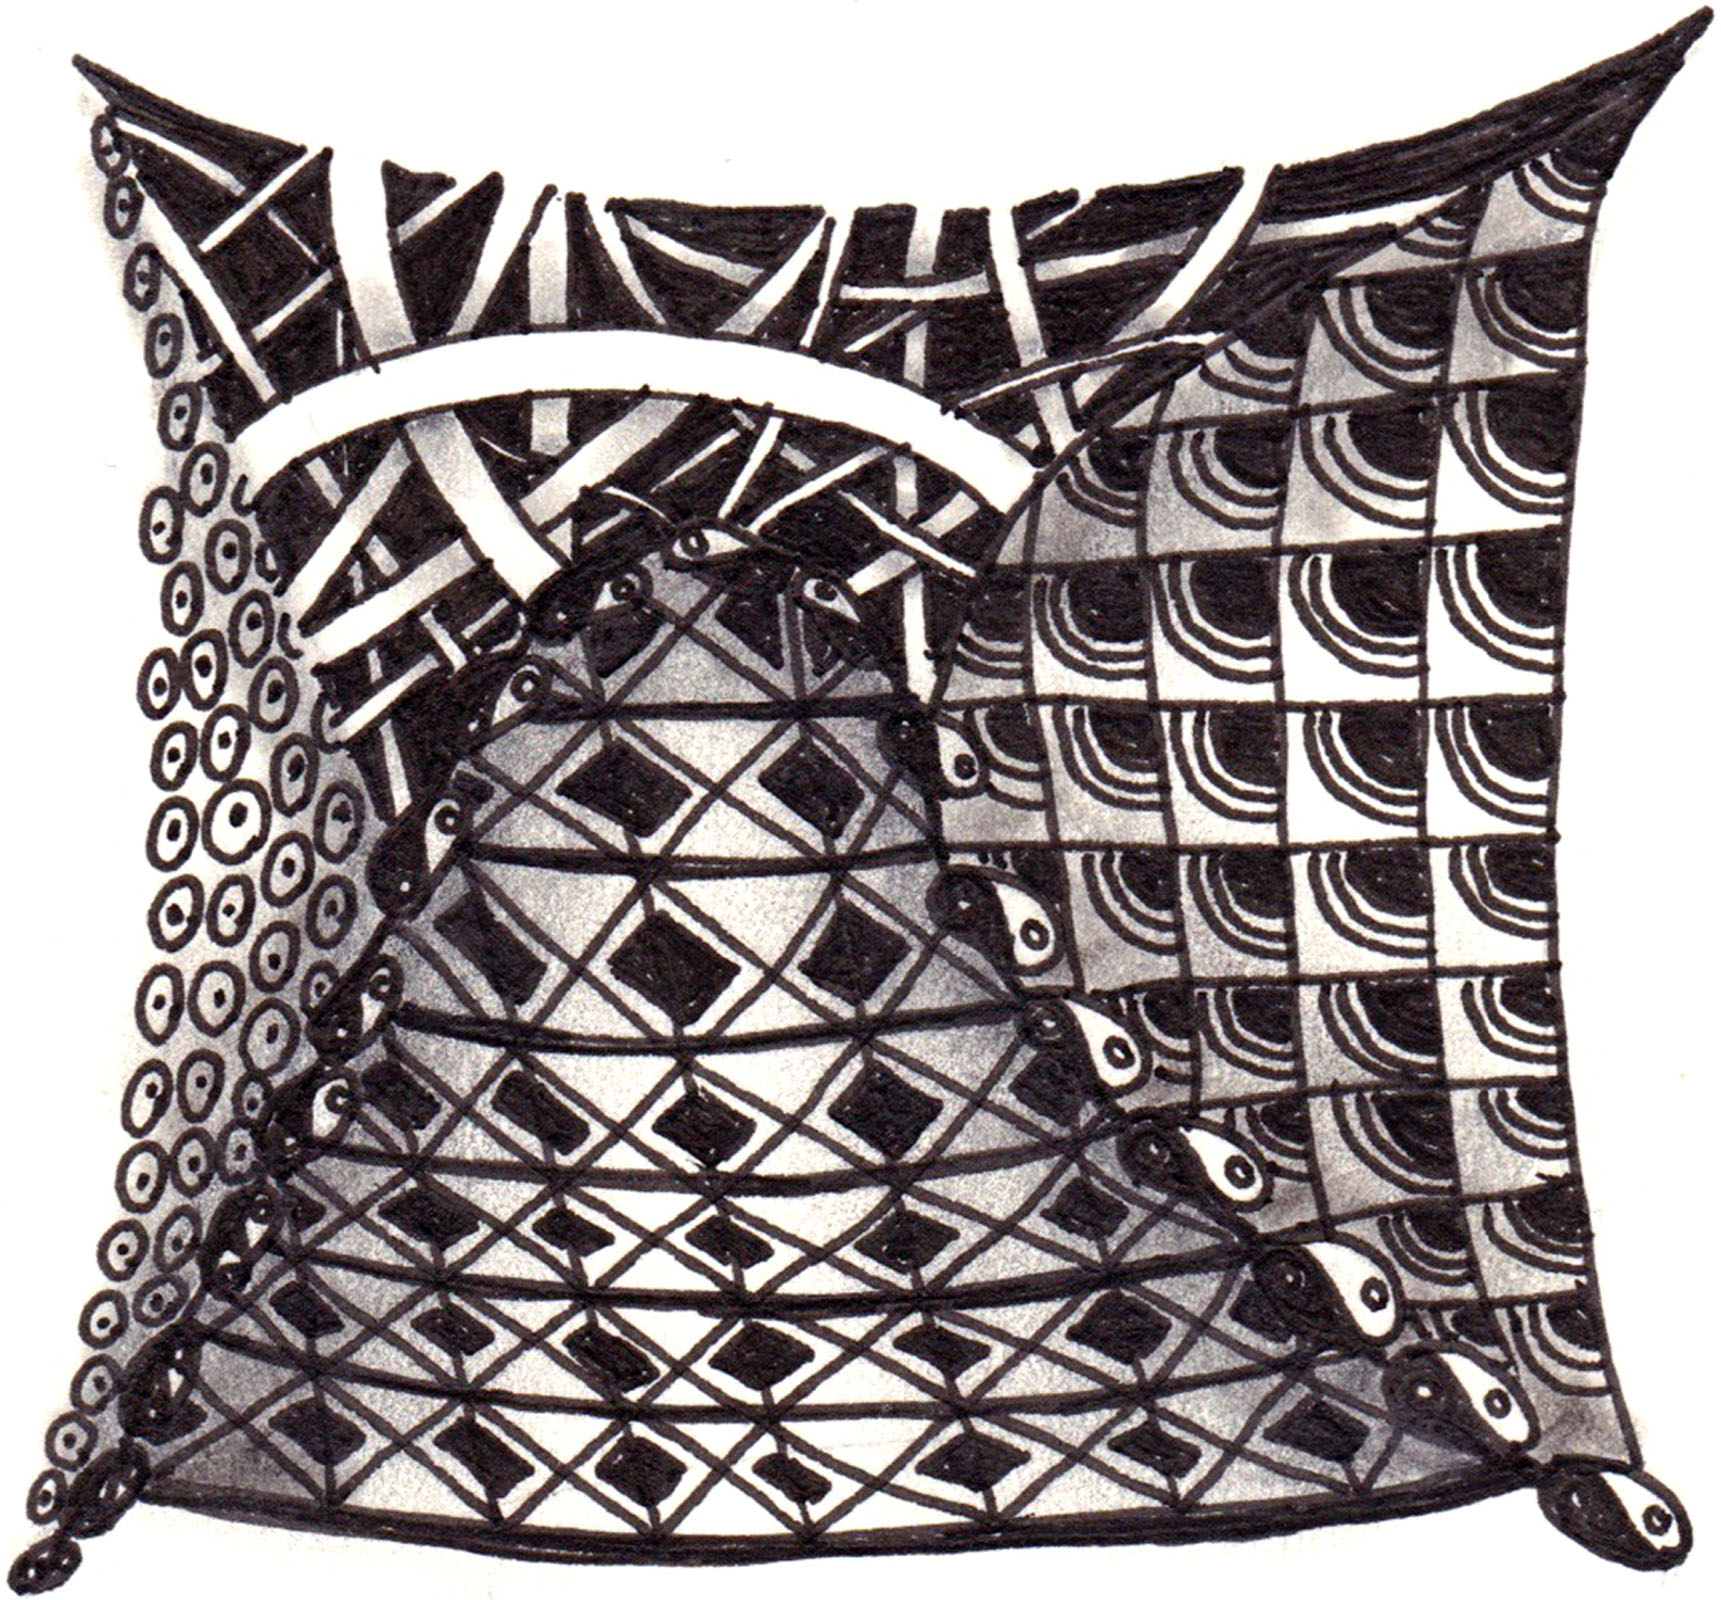 SMAsta-Zentangle_02_Yin.jpg